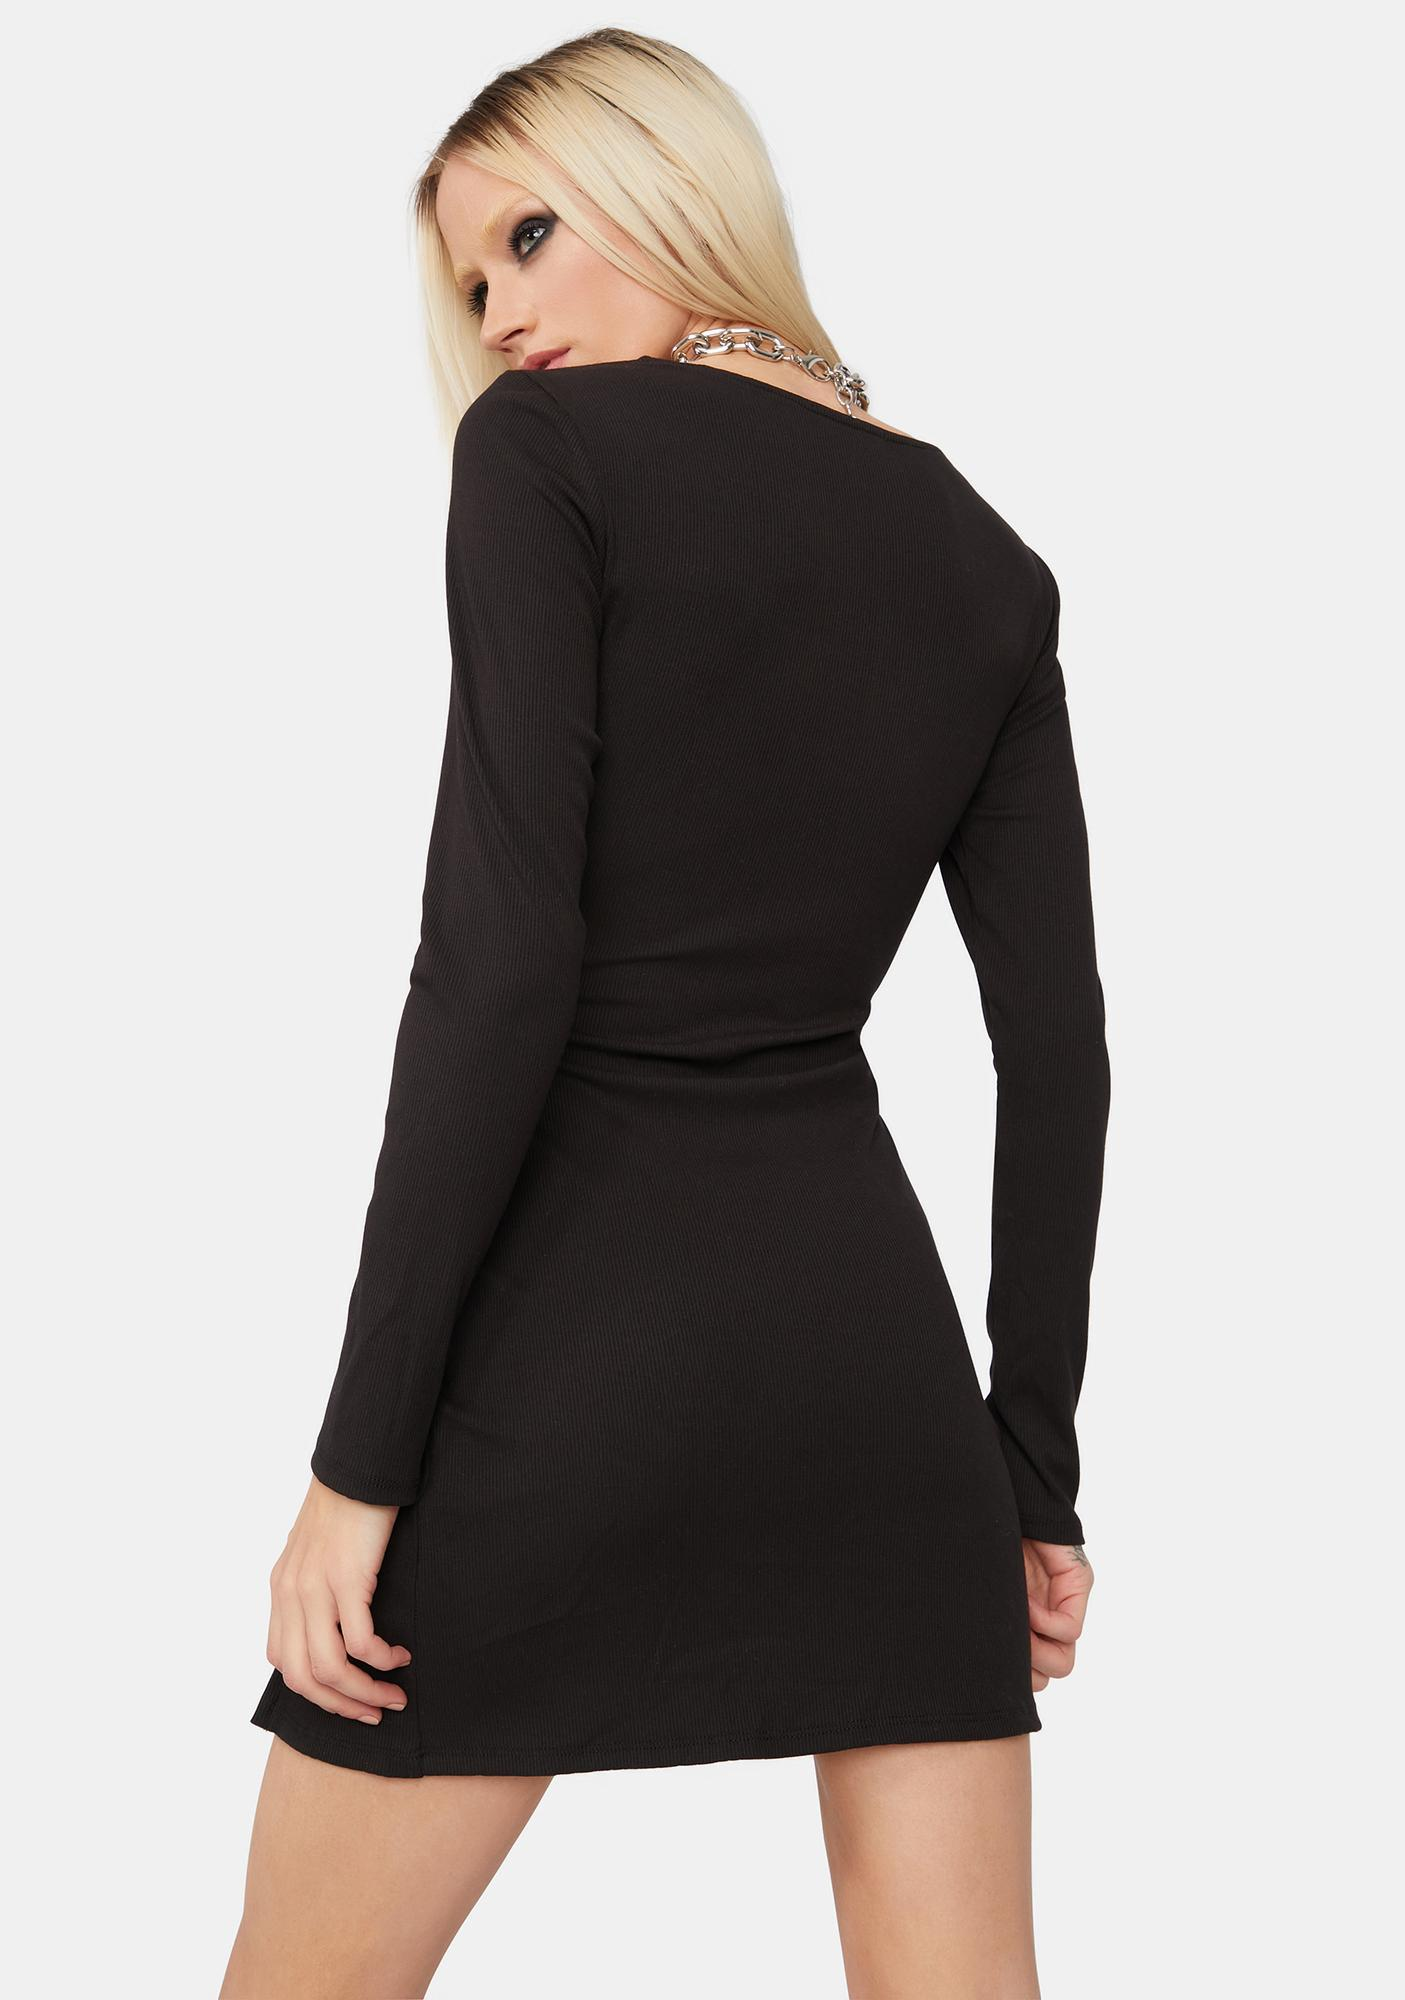 Purest Intentions Square Neck Long Sleeve Mini Dress